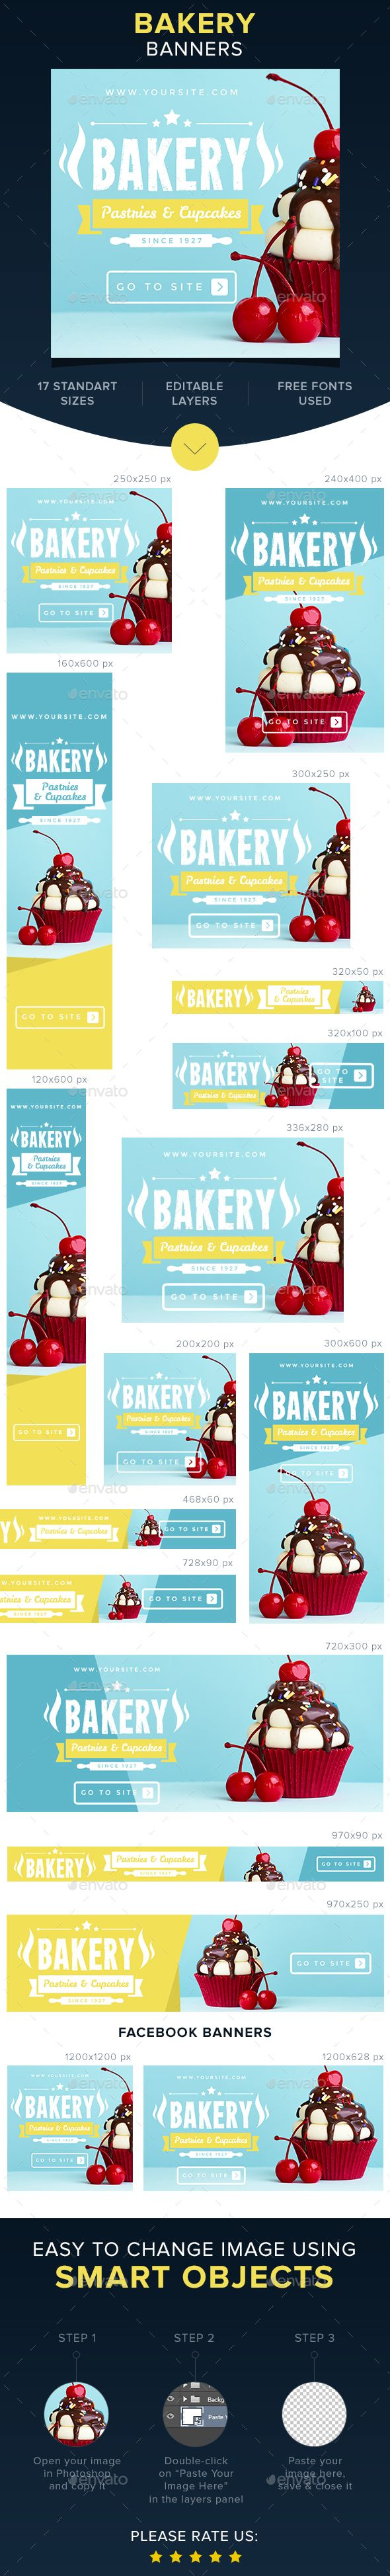 Banner Design Ideas vector web banners creative design graphics set Bakery Banners